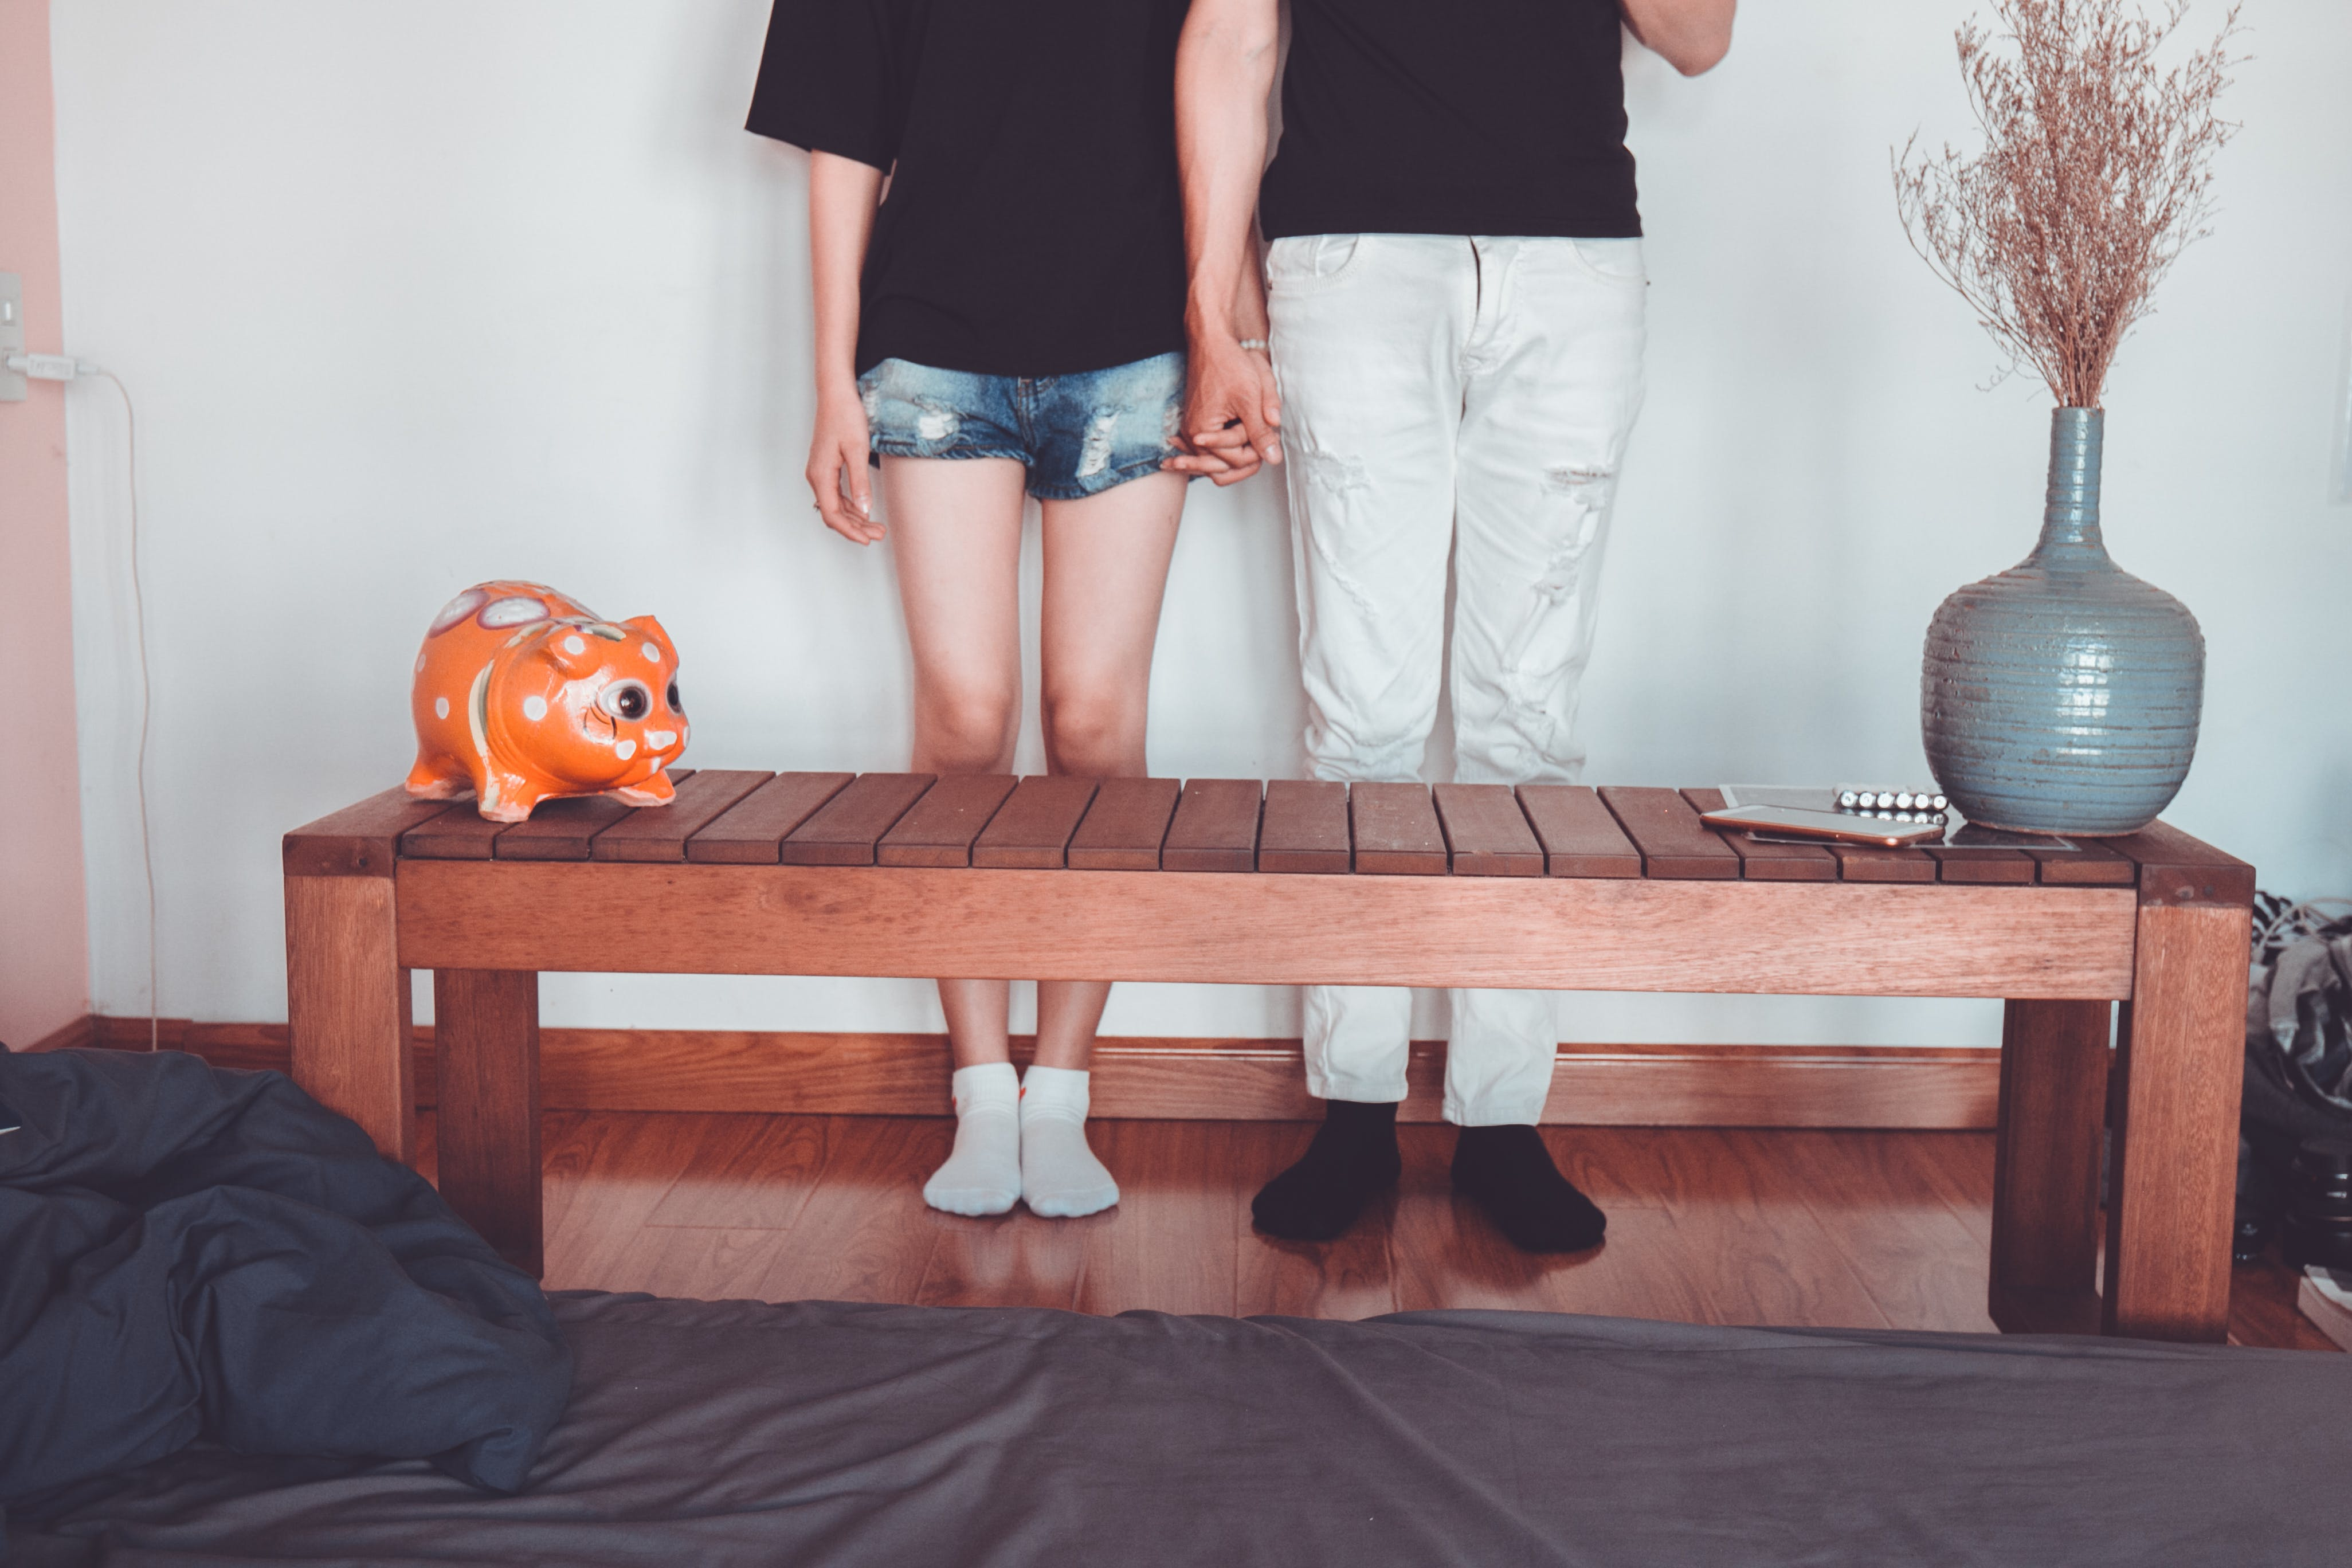 Woman and Man Holding Hand Standing Near Brown Coffee Table Inside Room